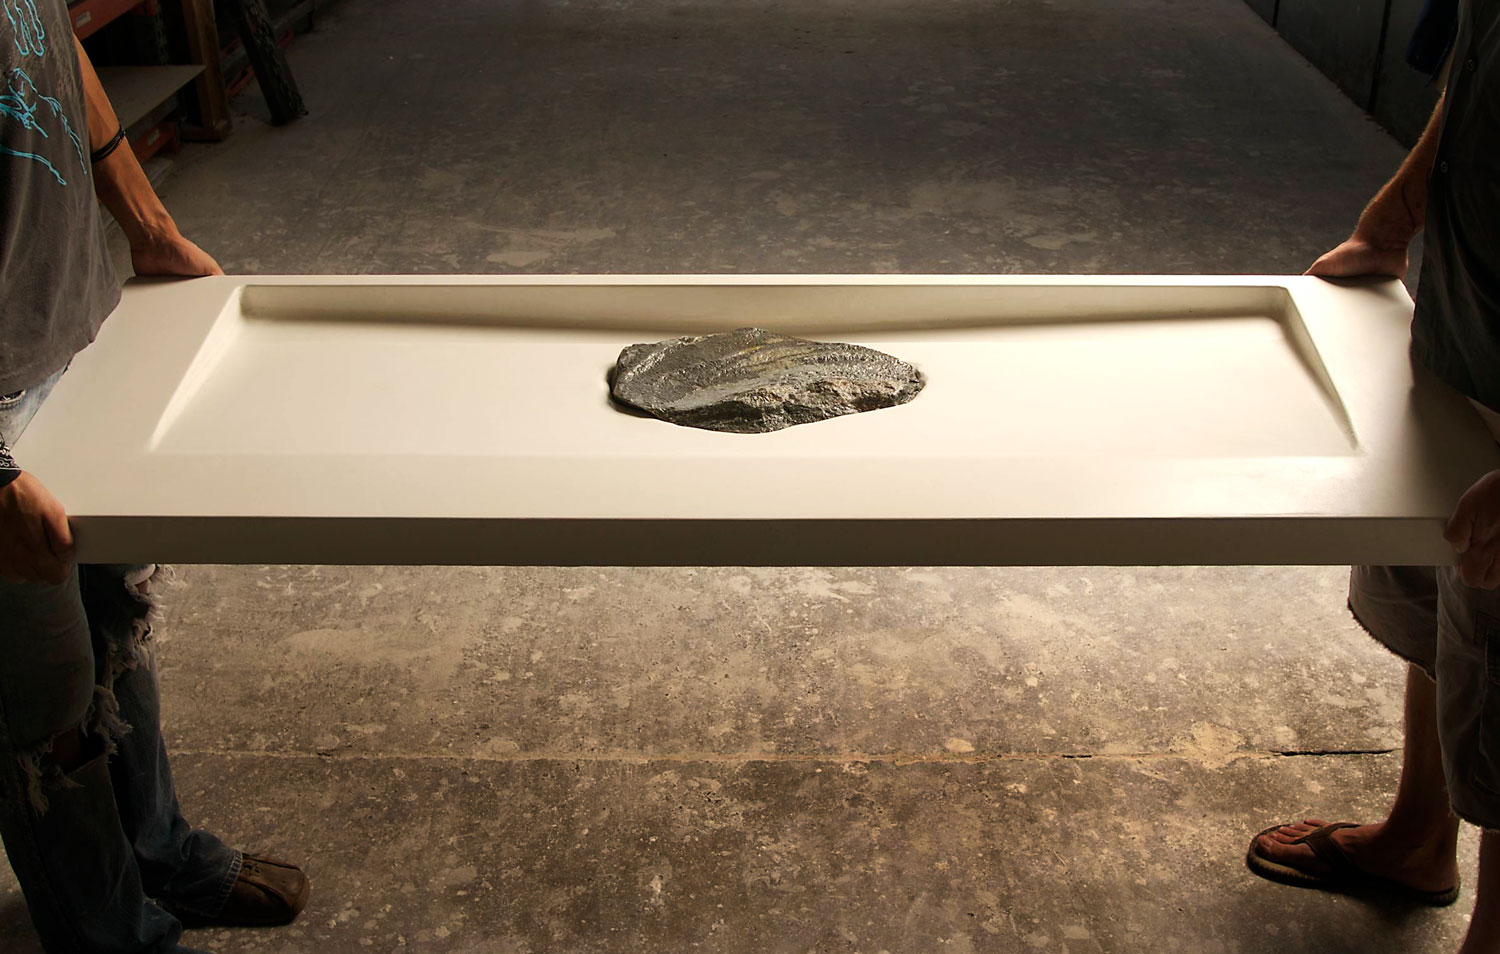 Custom white concrete double basin sink featuring an inlaid stone shelf in the center of the sink.